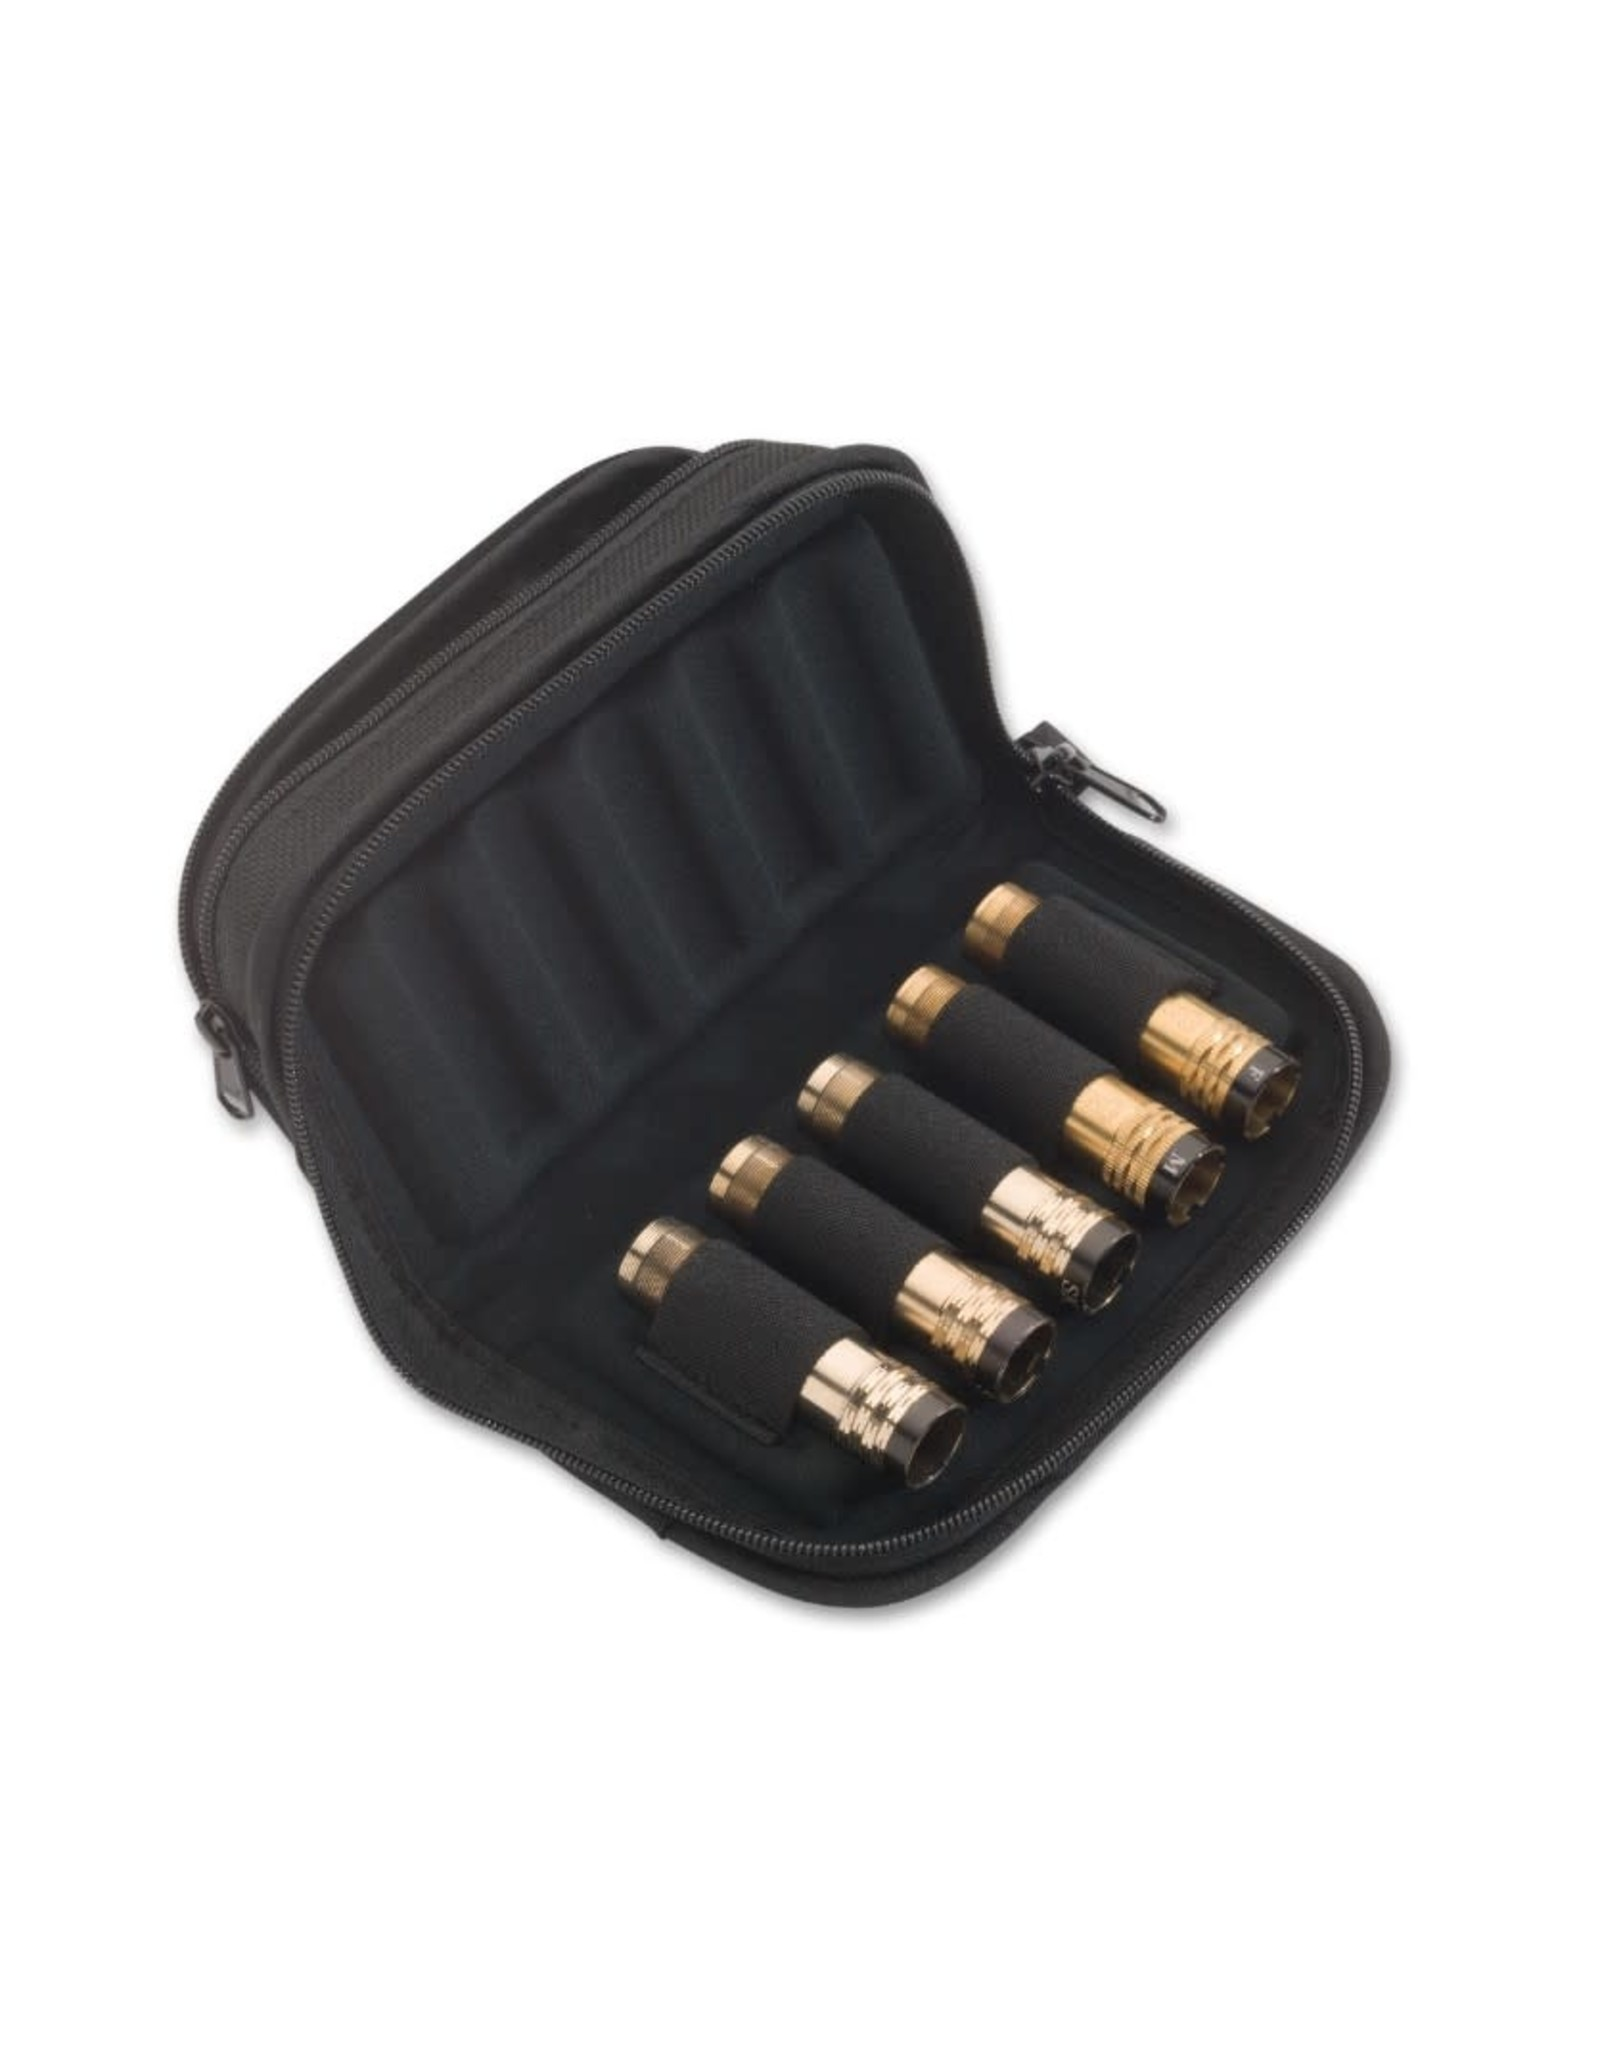 Browning Flex Foam Zippered Choke Tube Case